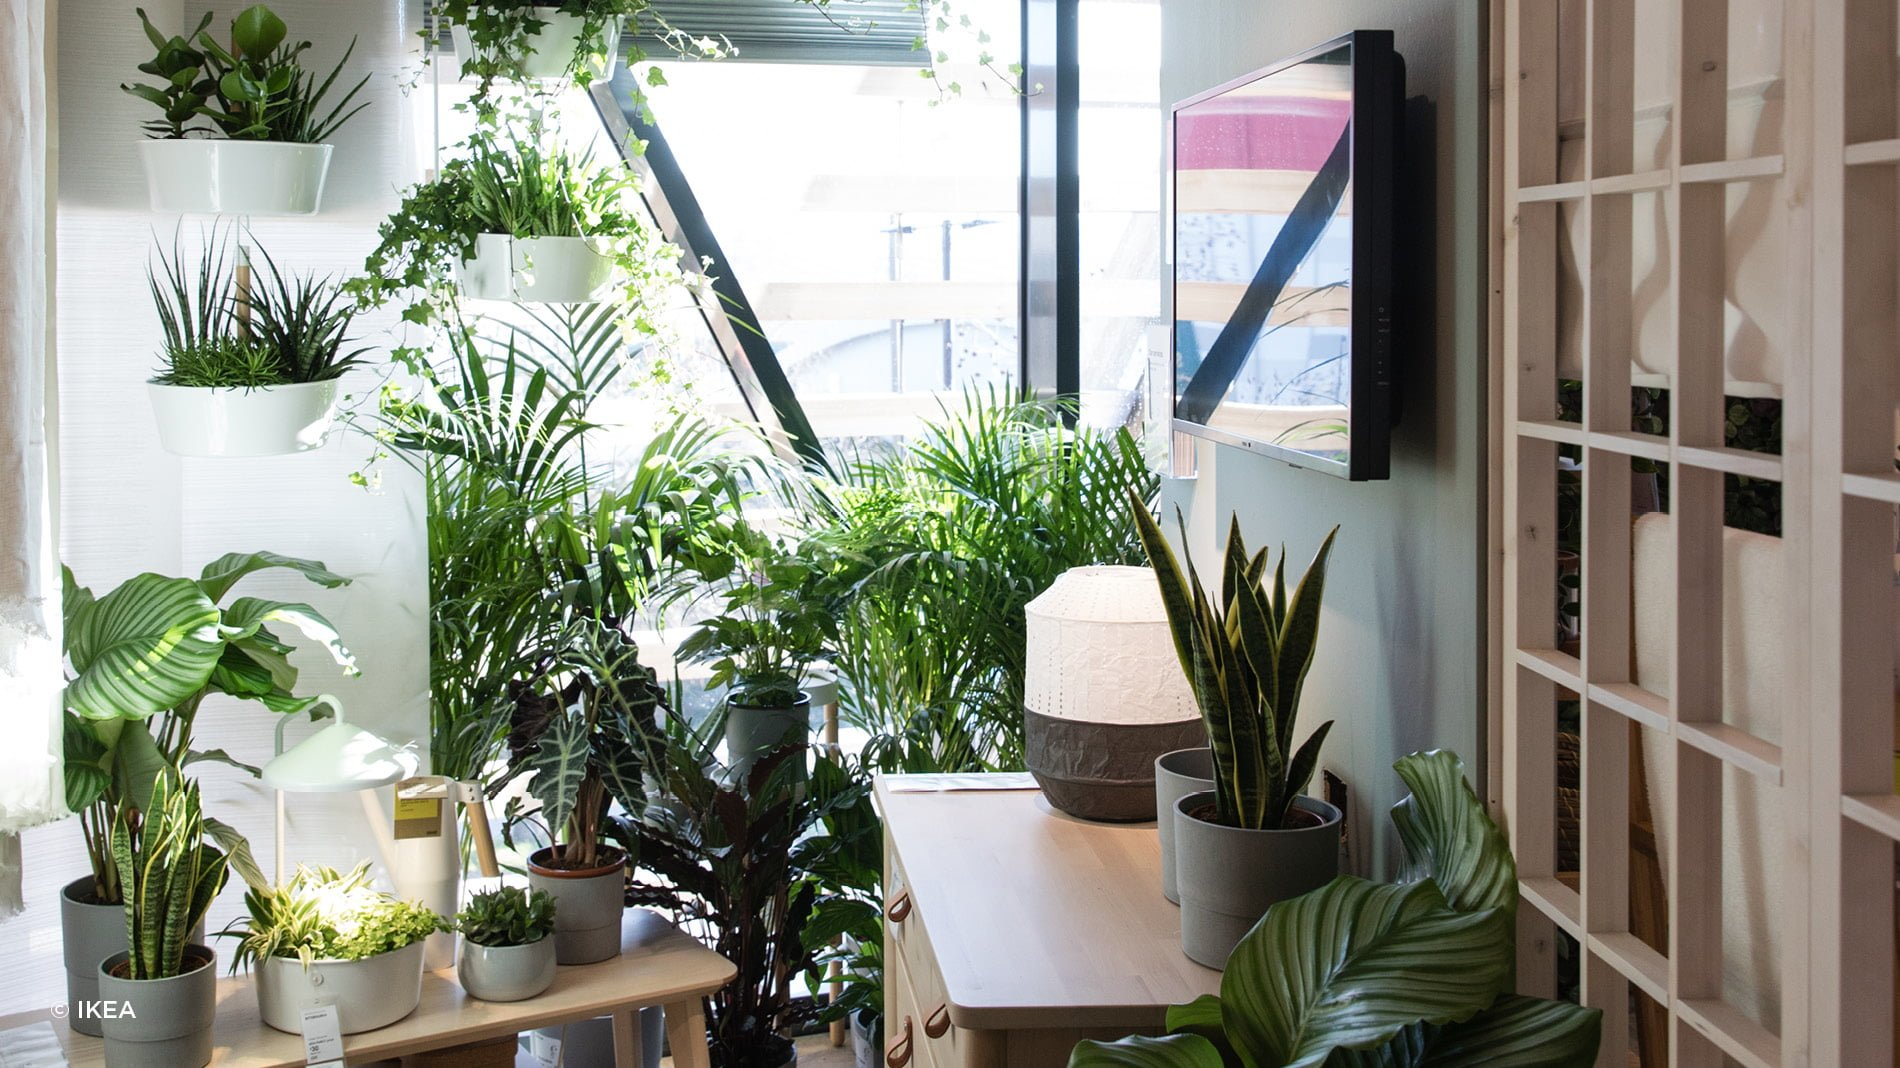 House plants in the IKEA Greenwich store, IKEA's most sustainable store in the UK